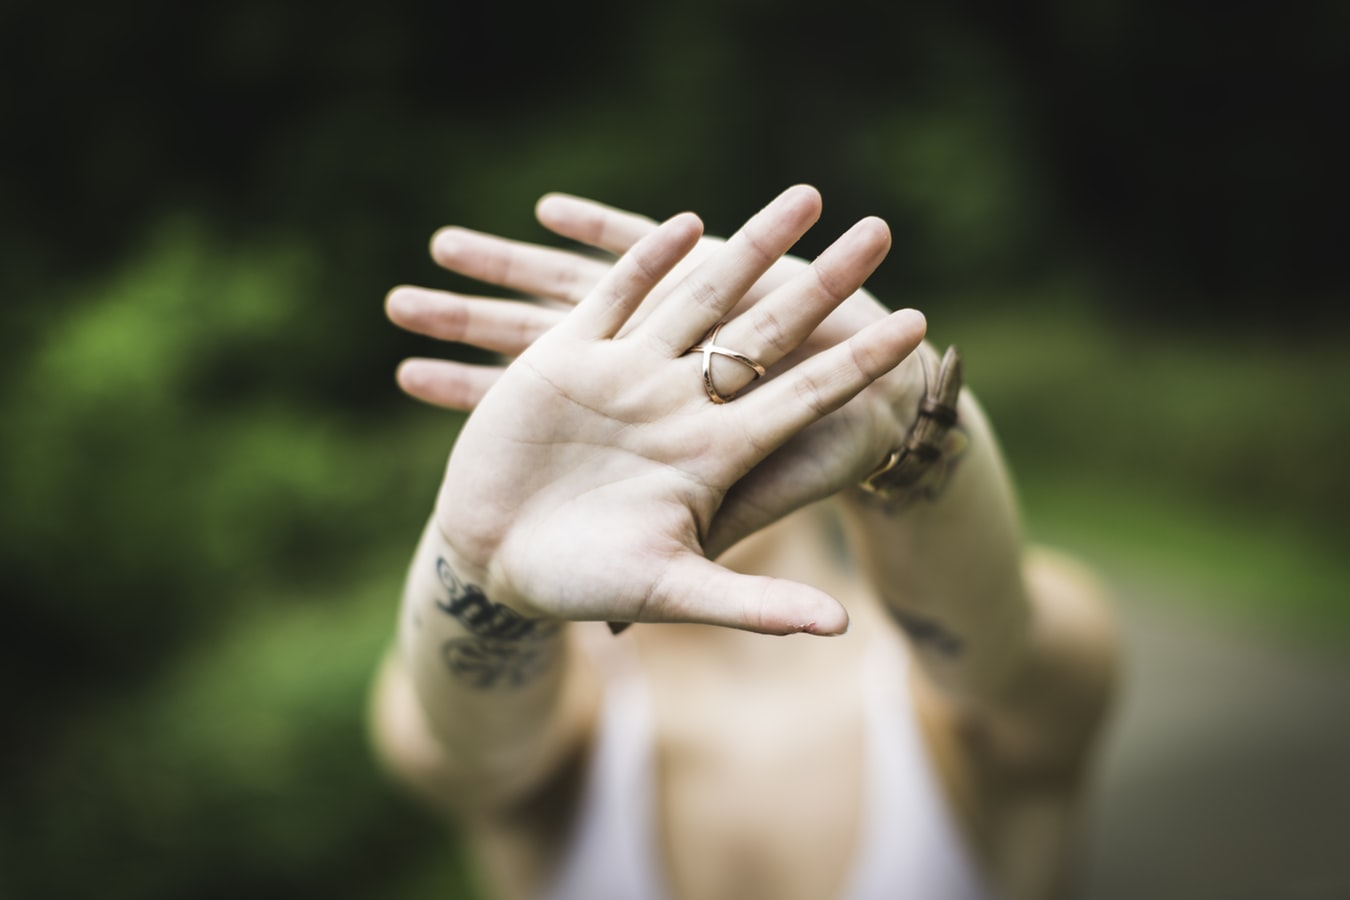 A woman holding her hands out because she wants to prevent prescription medication abuse